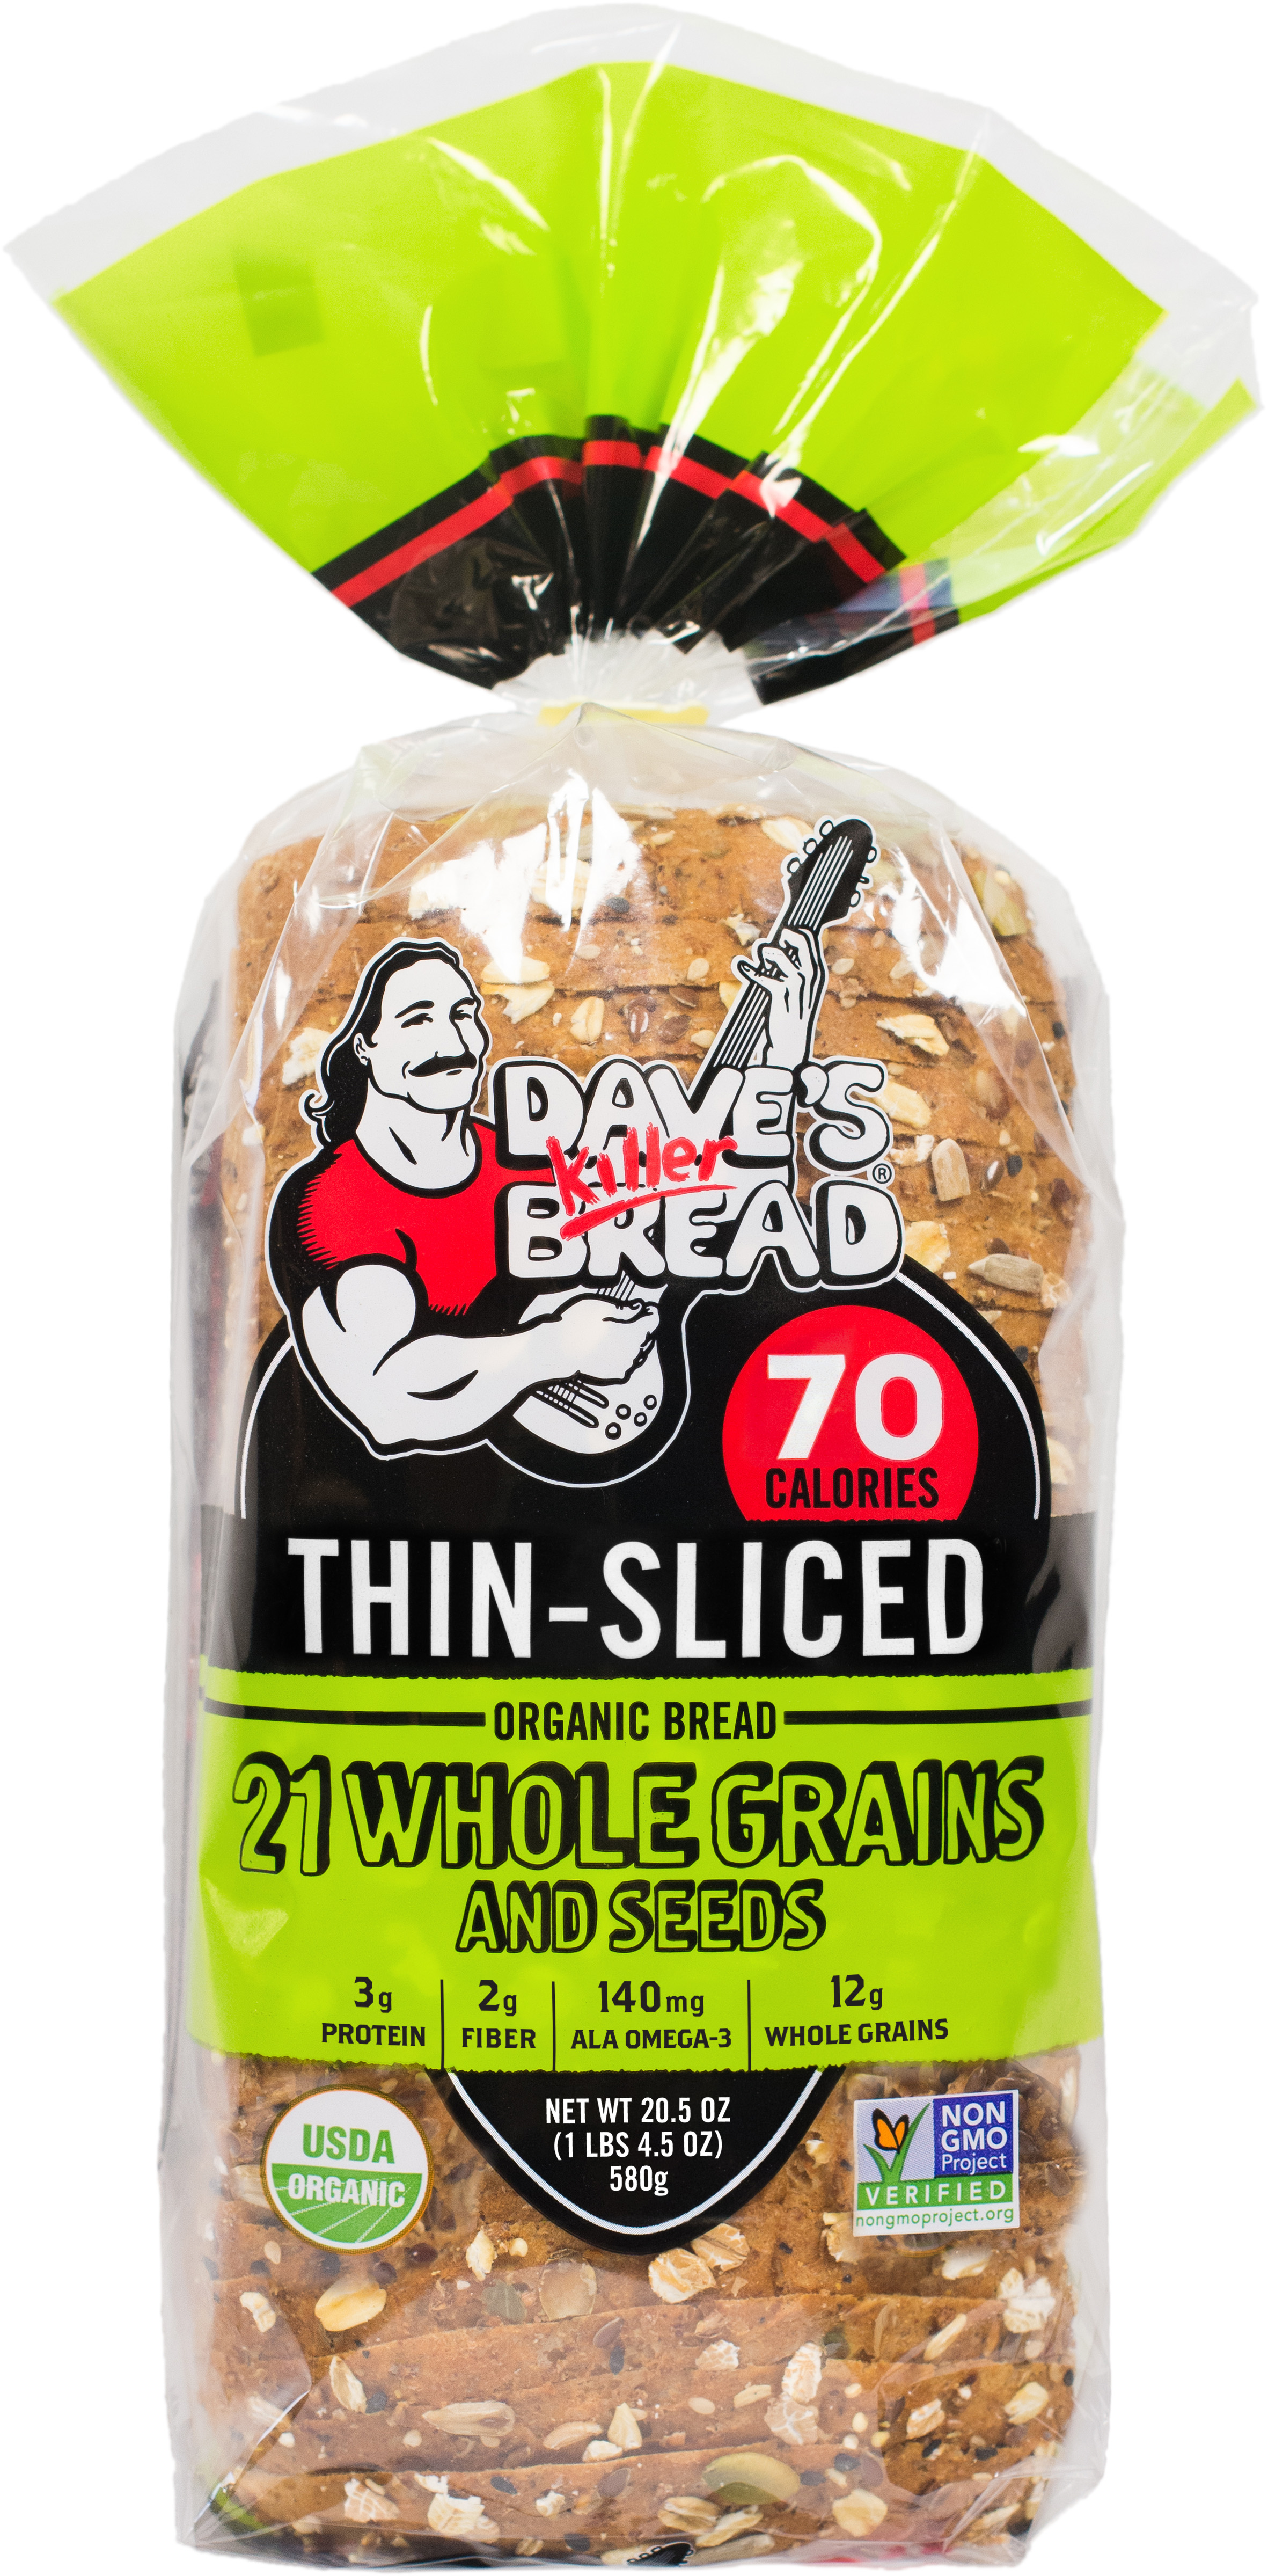 21 Whole Grains and Seeds Thin-Sliced